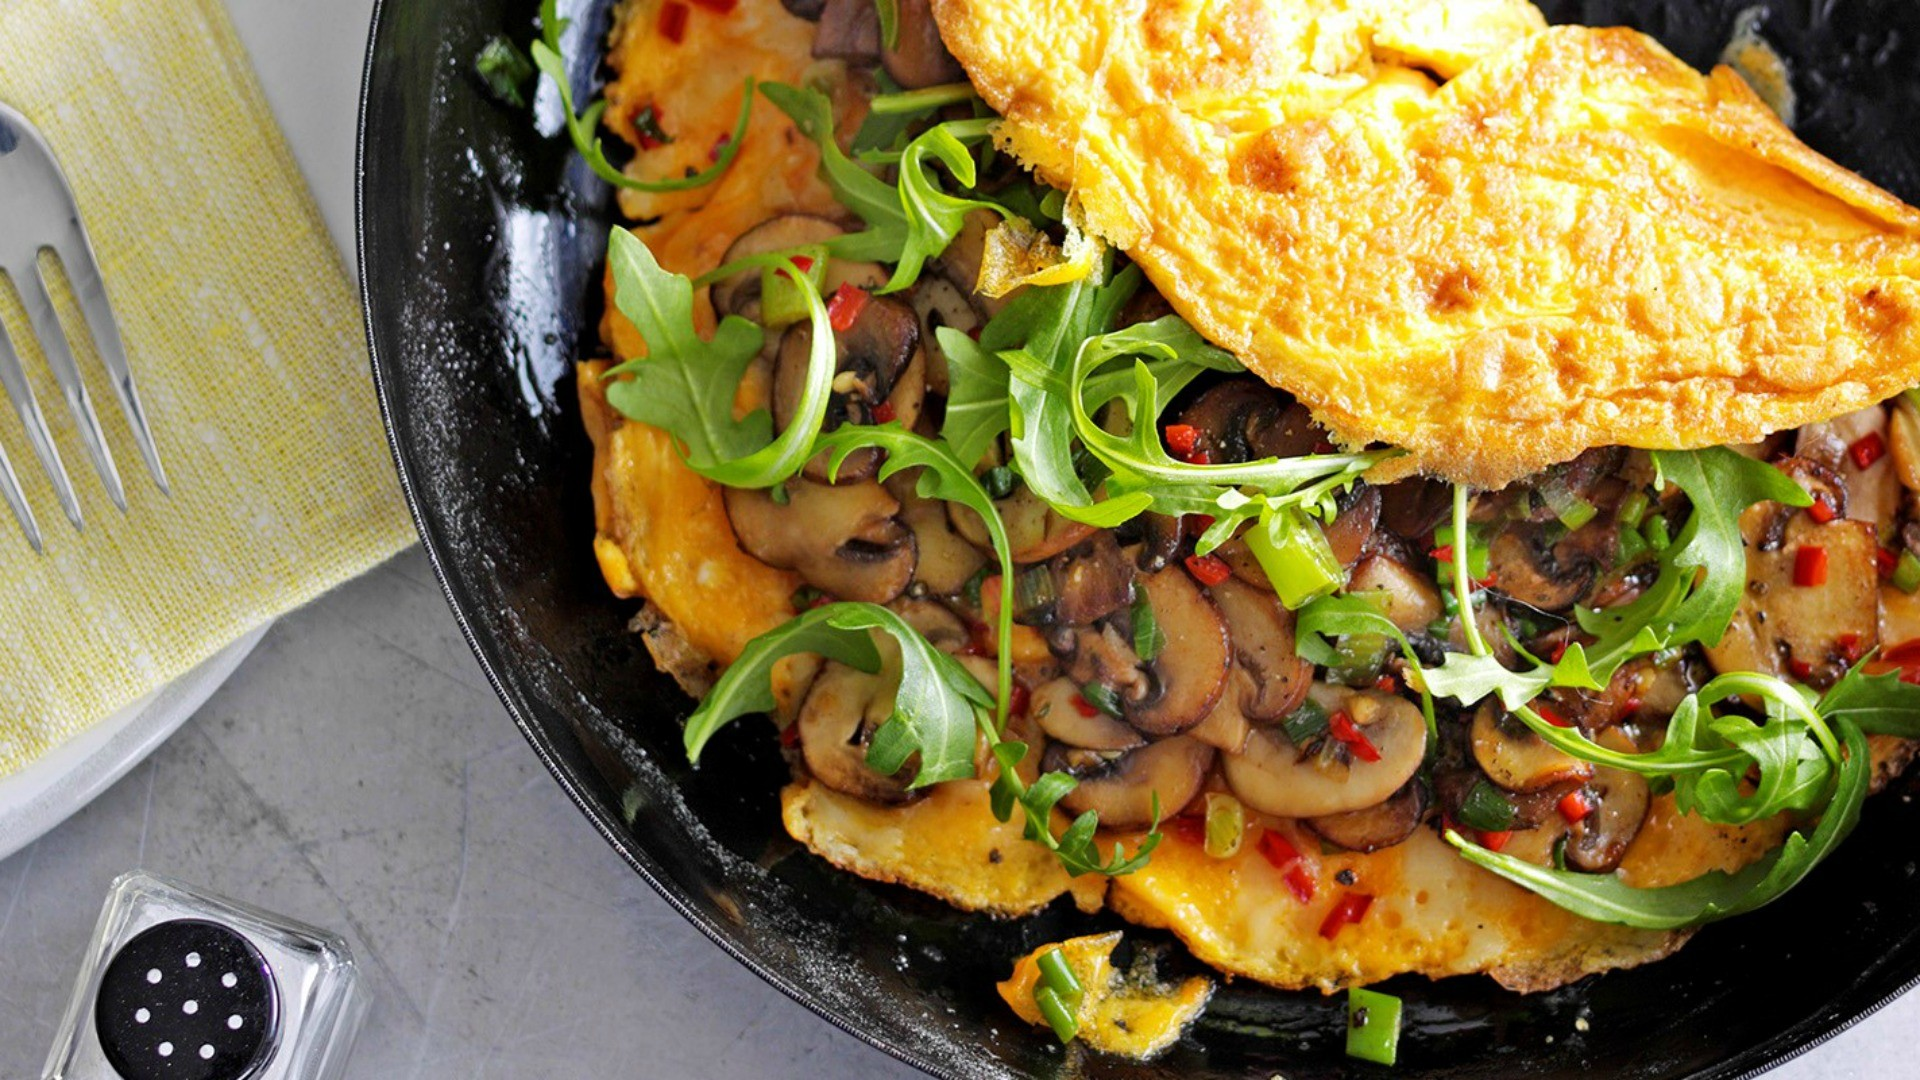 Super-quick to whip up, with a bit of a chilli kick in with the mushrooms